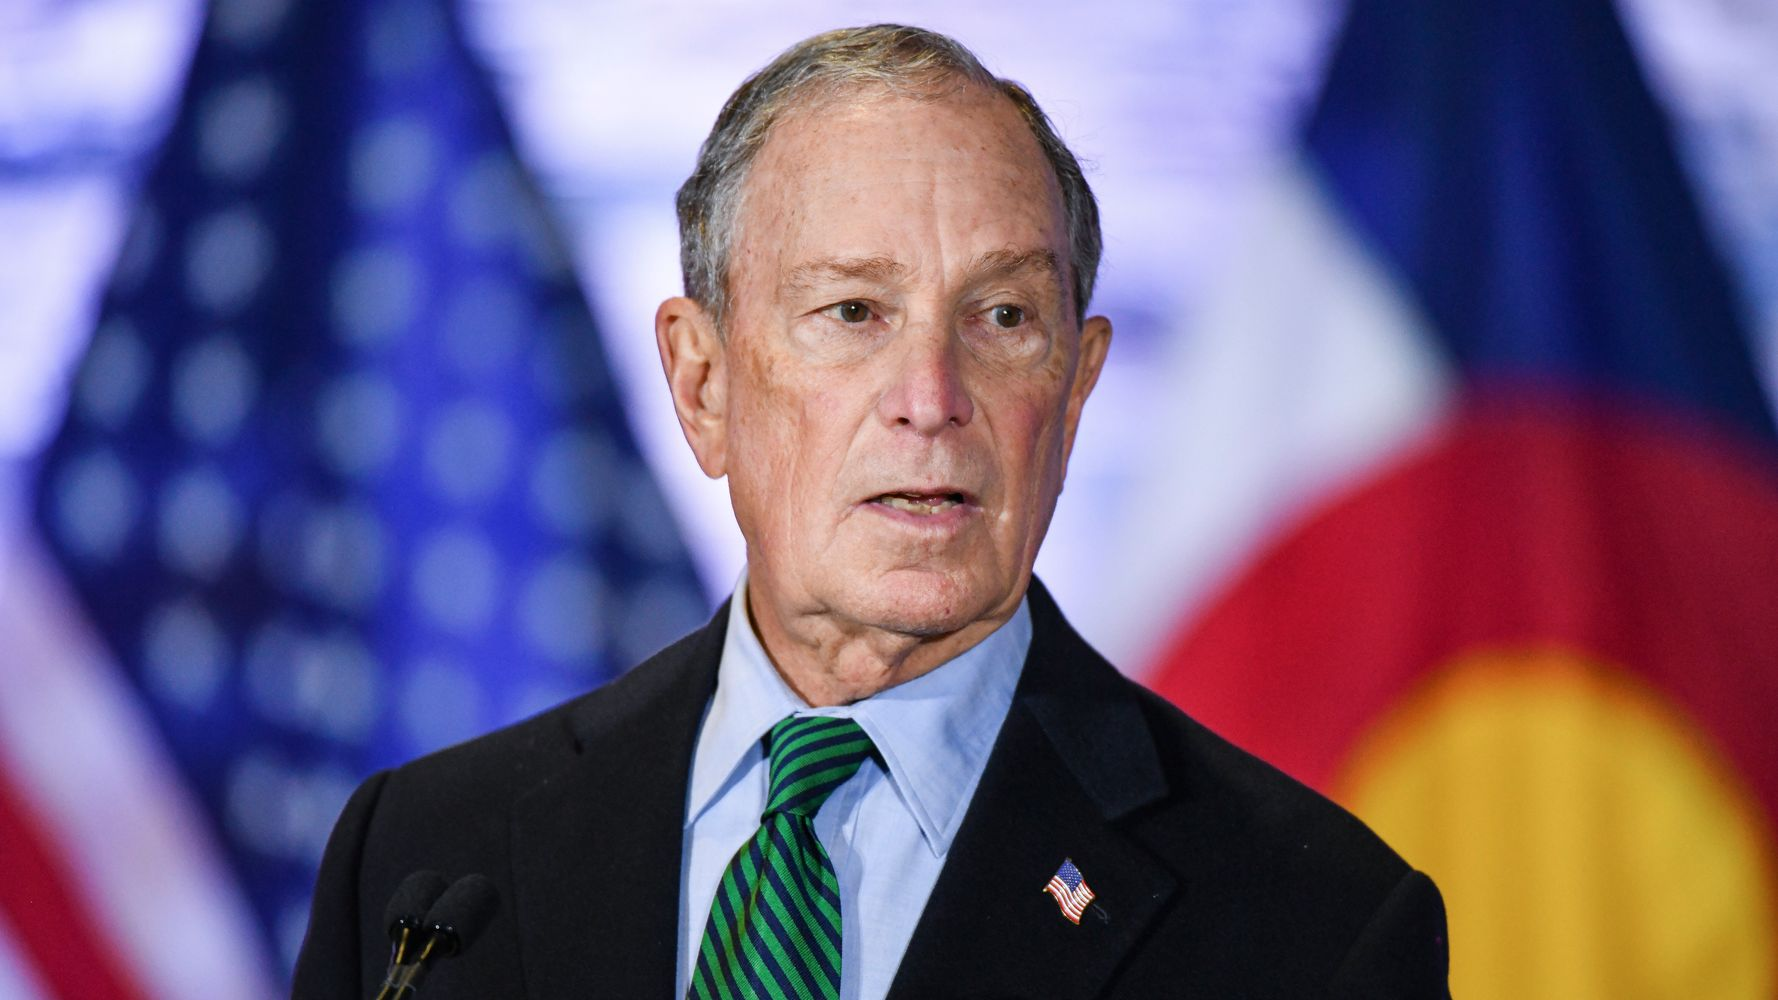 Westlake Legal Group 5dea60922400004e005a28ac Bloomberg Falsely Claims No One Asked Him About Stop-And-Frisk Until Now